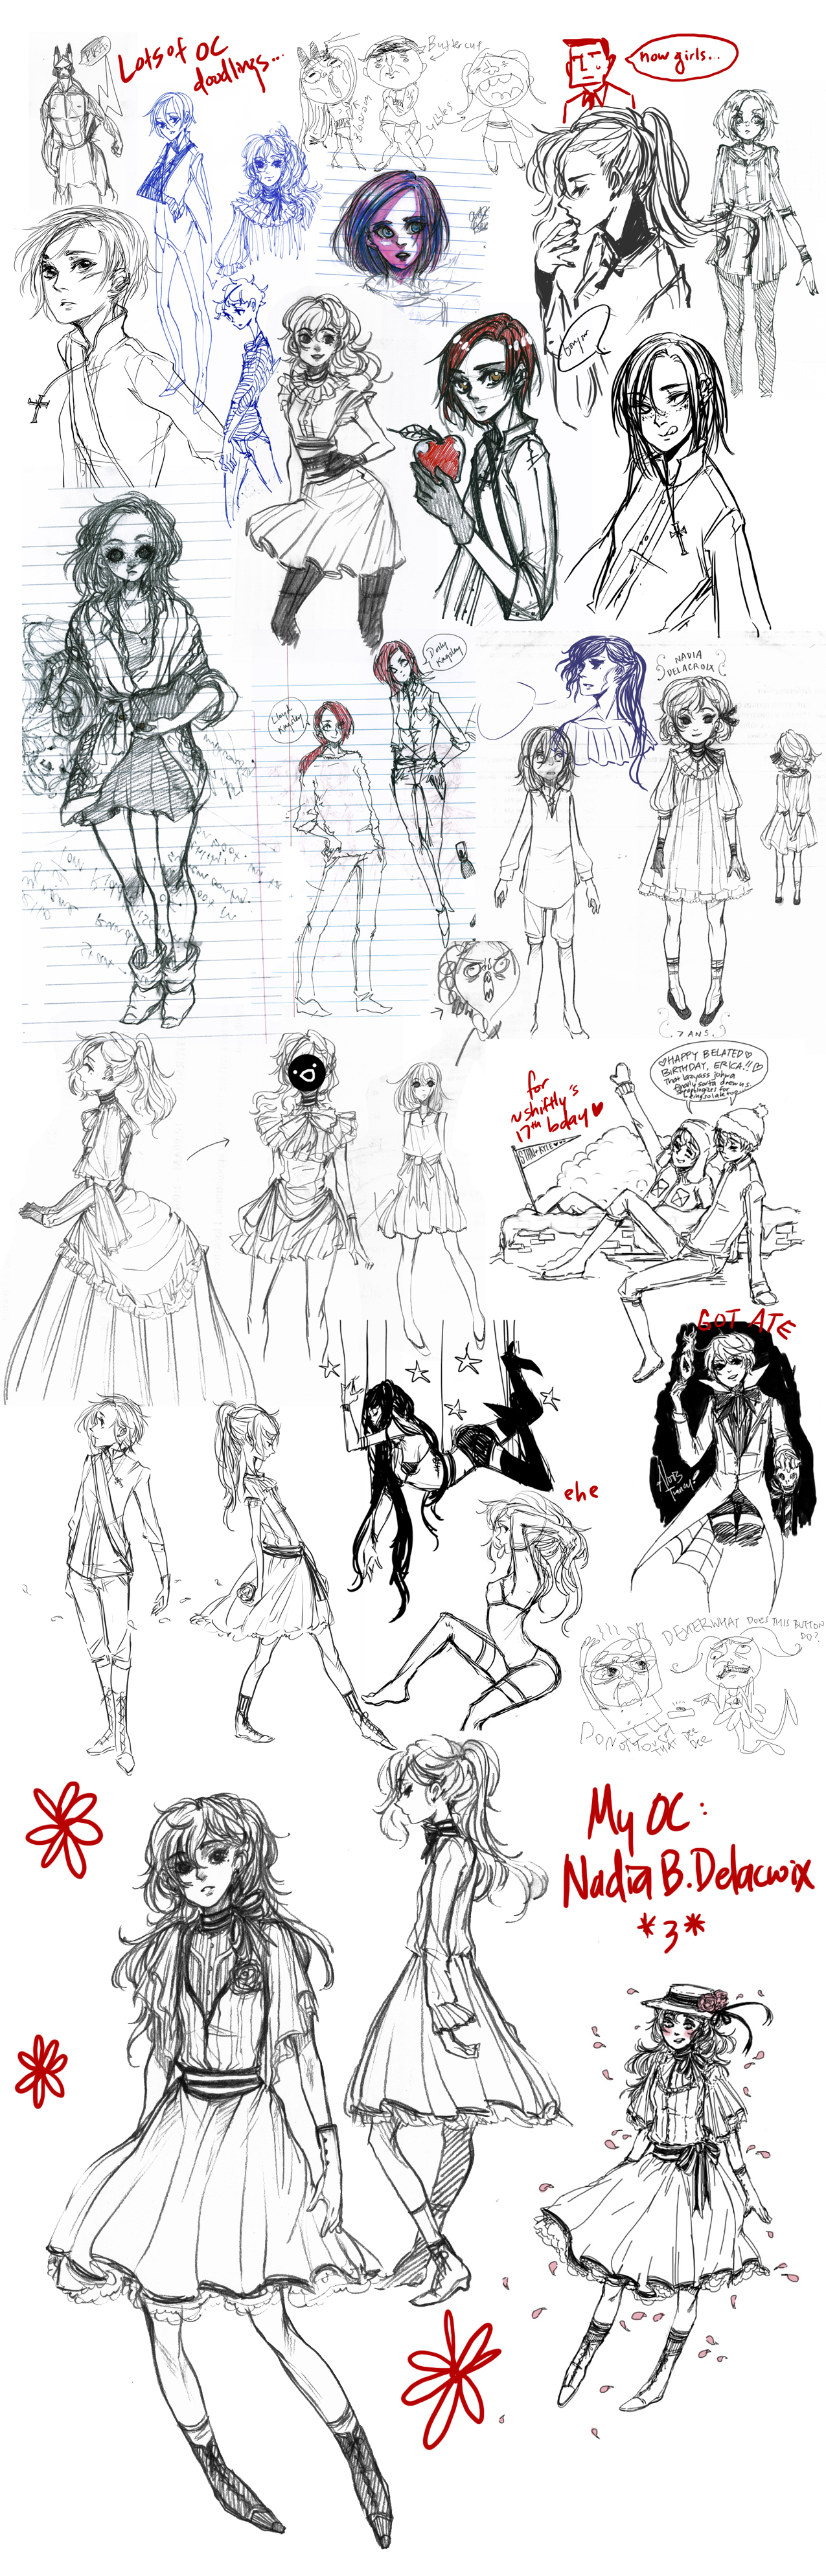 OTHER SKETCHES by johwa